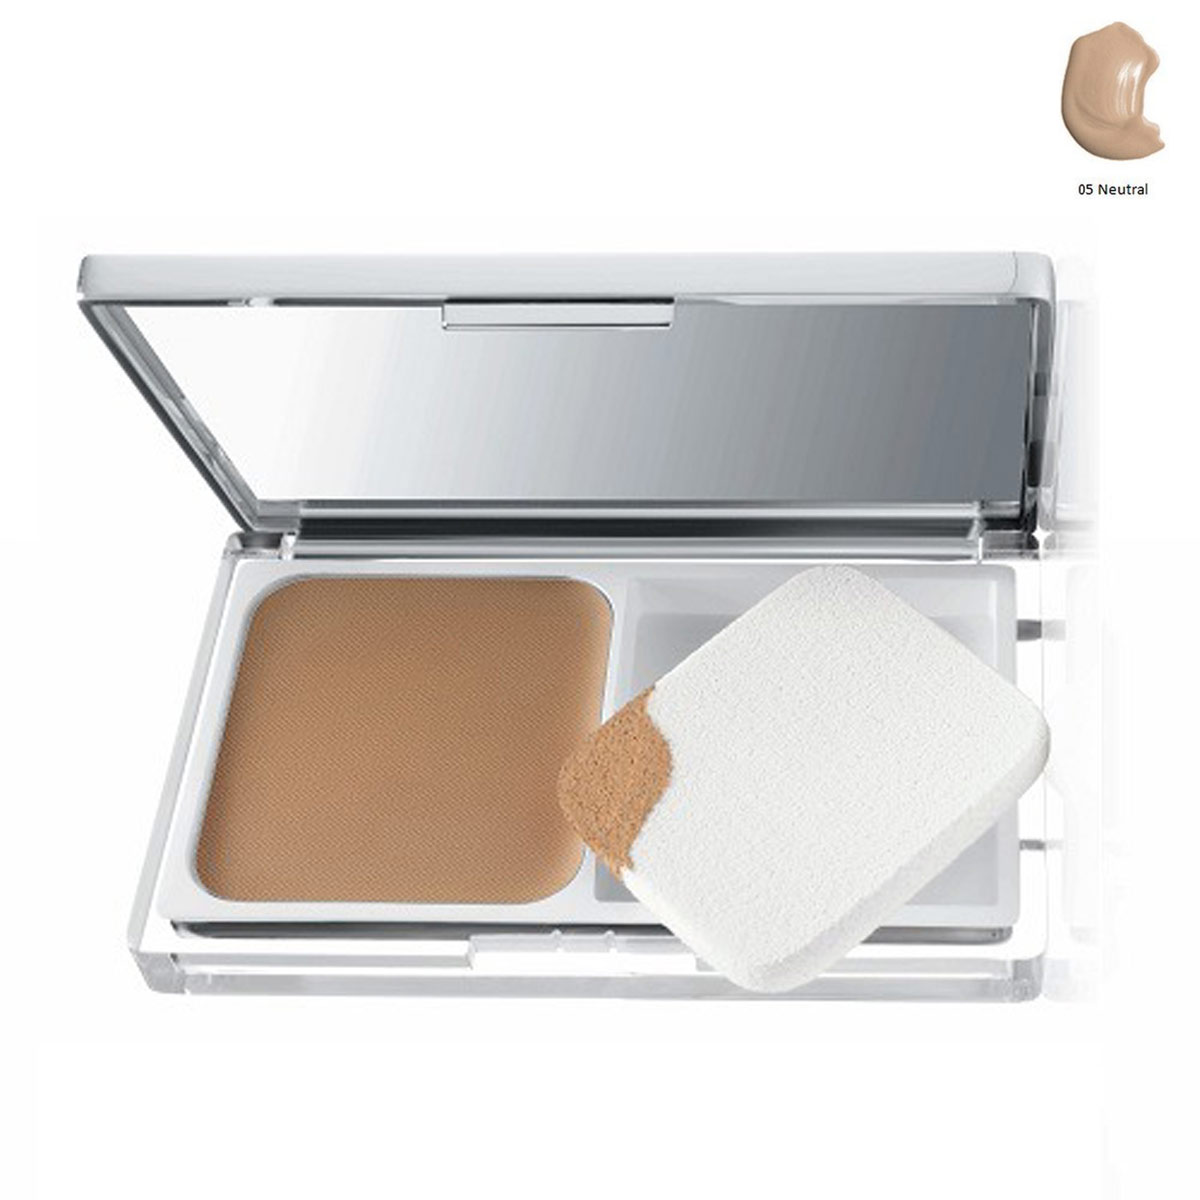 Puder Clinique Anti-Blemish Solutions Powder Makeup Puder matujący  10 g - 09 Neutral